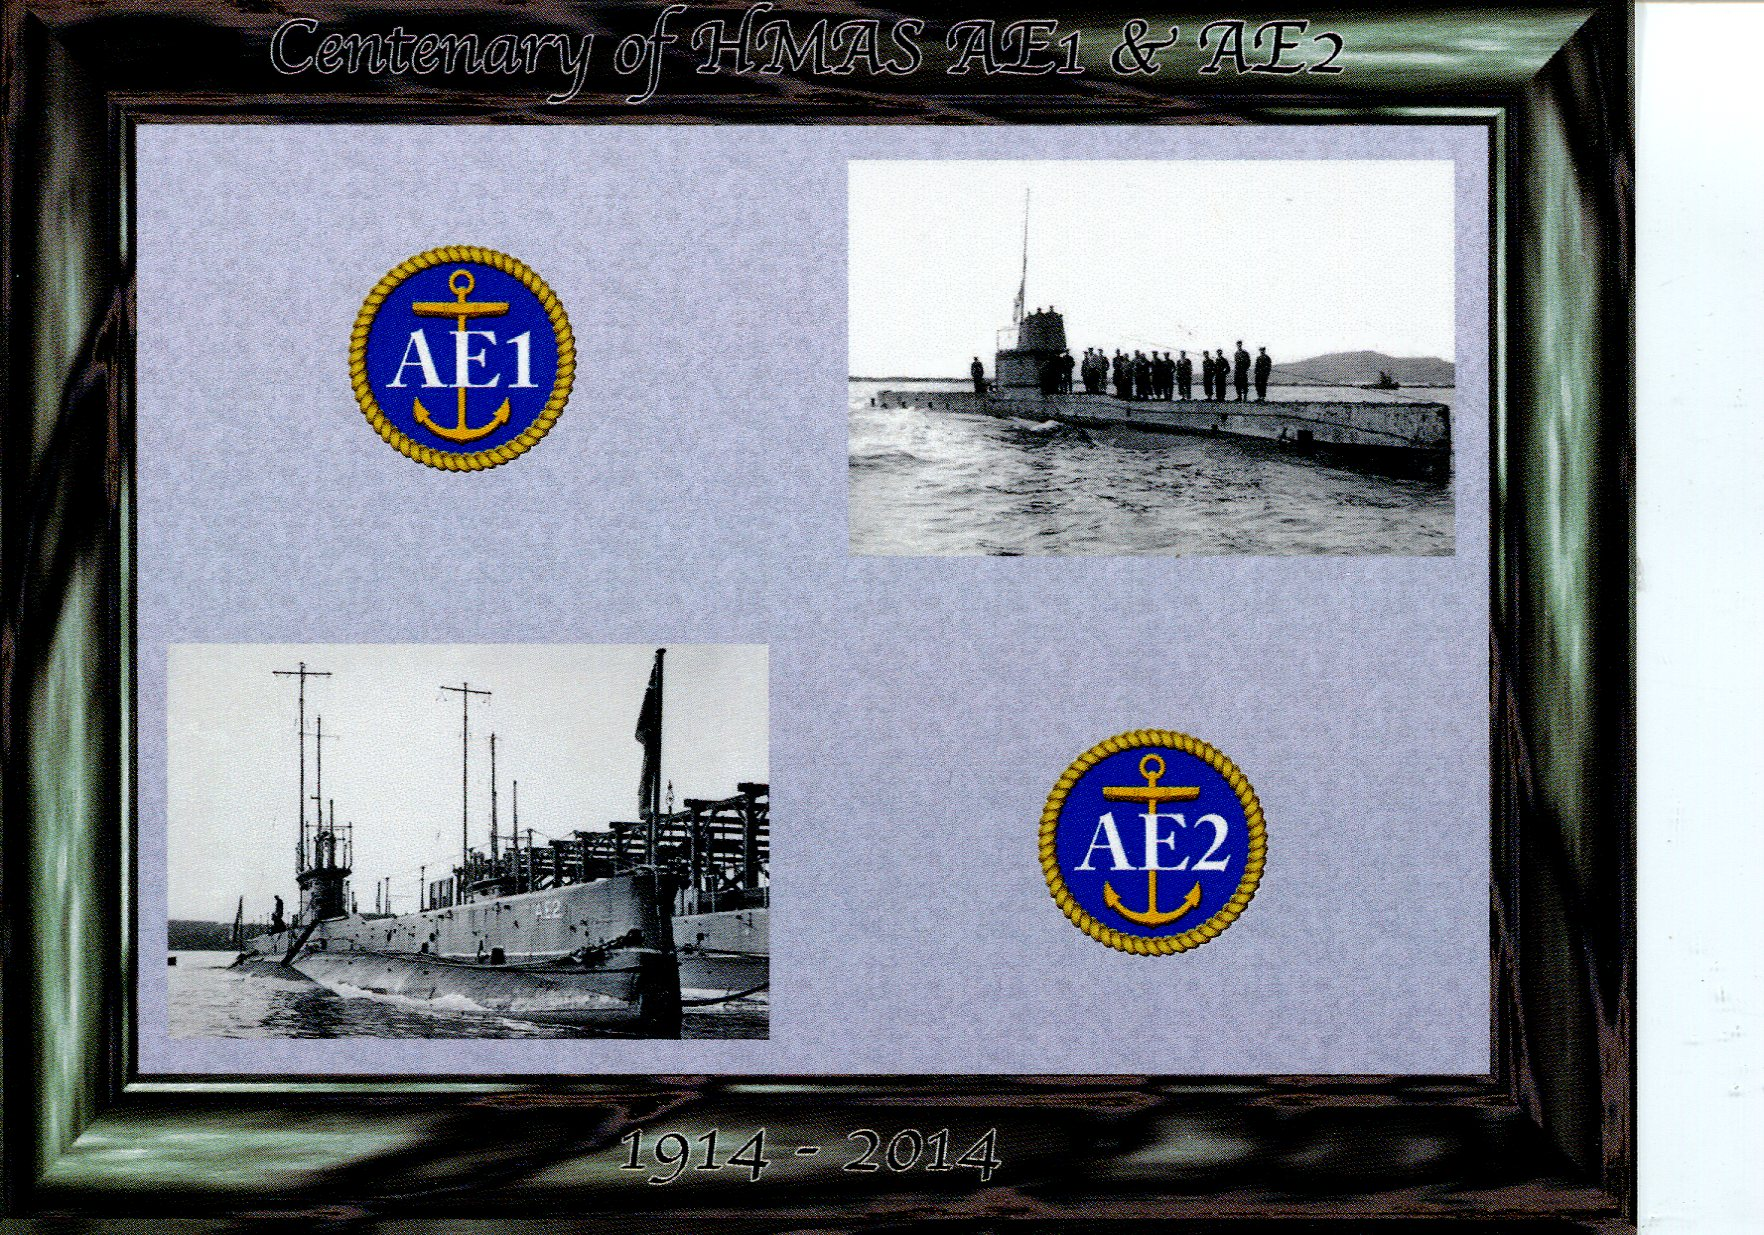 Centenary of AE1 and AE2 Australian Submarines